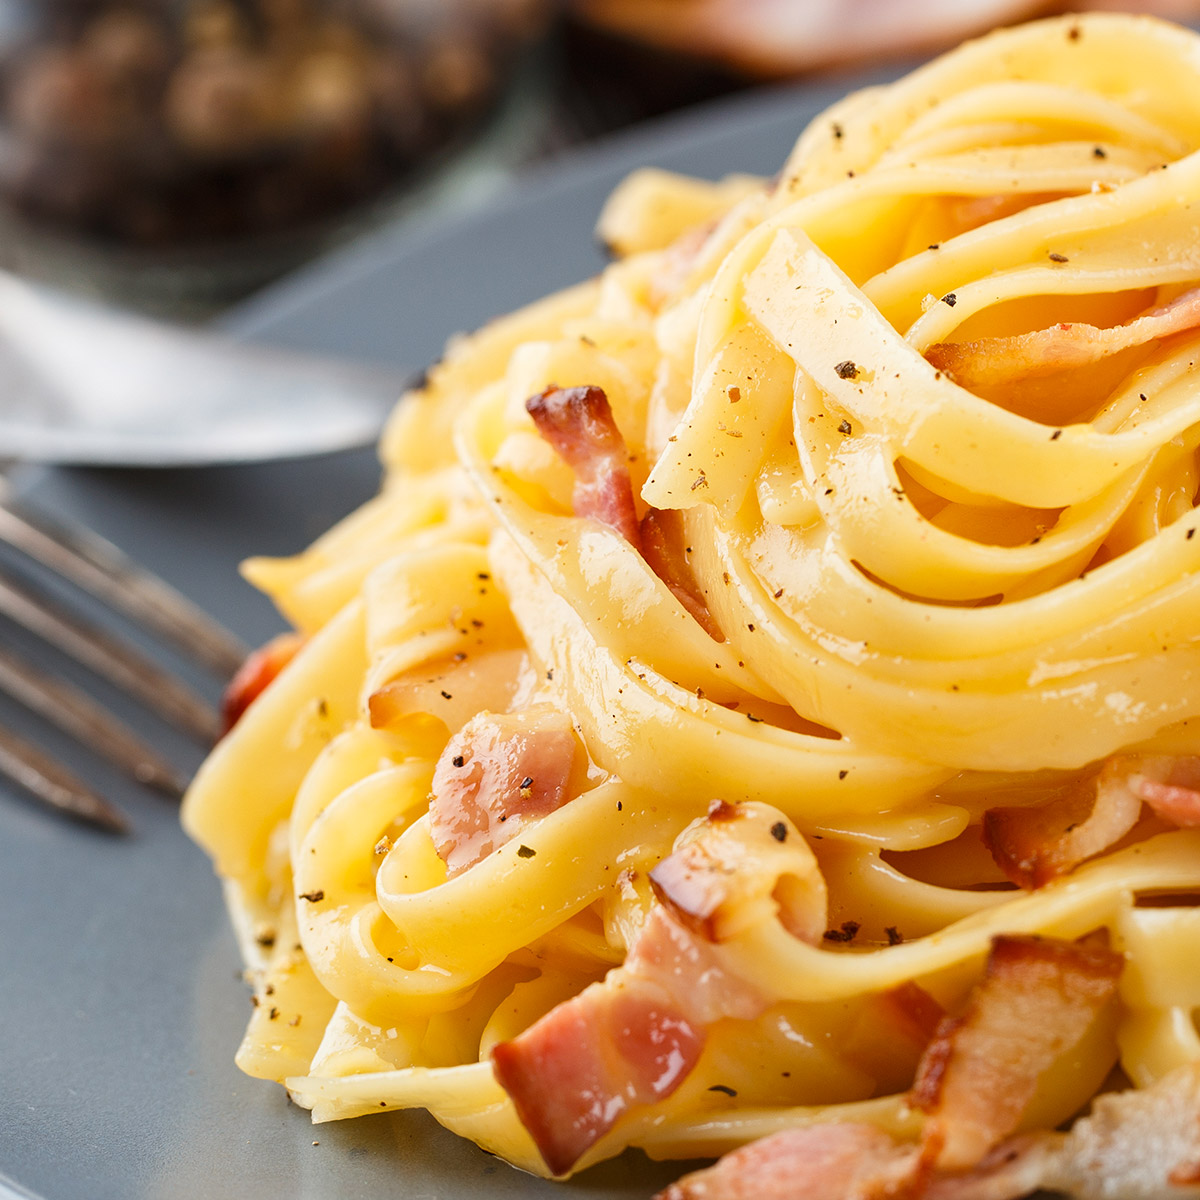 Pinot Grigio Food suggestion - Carbonara